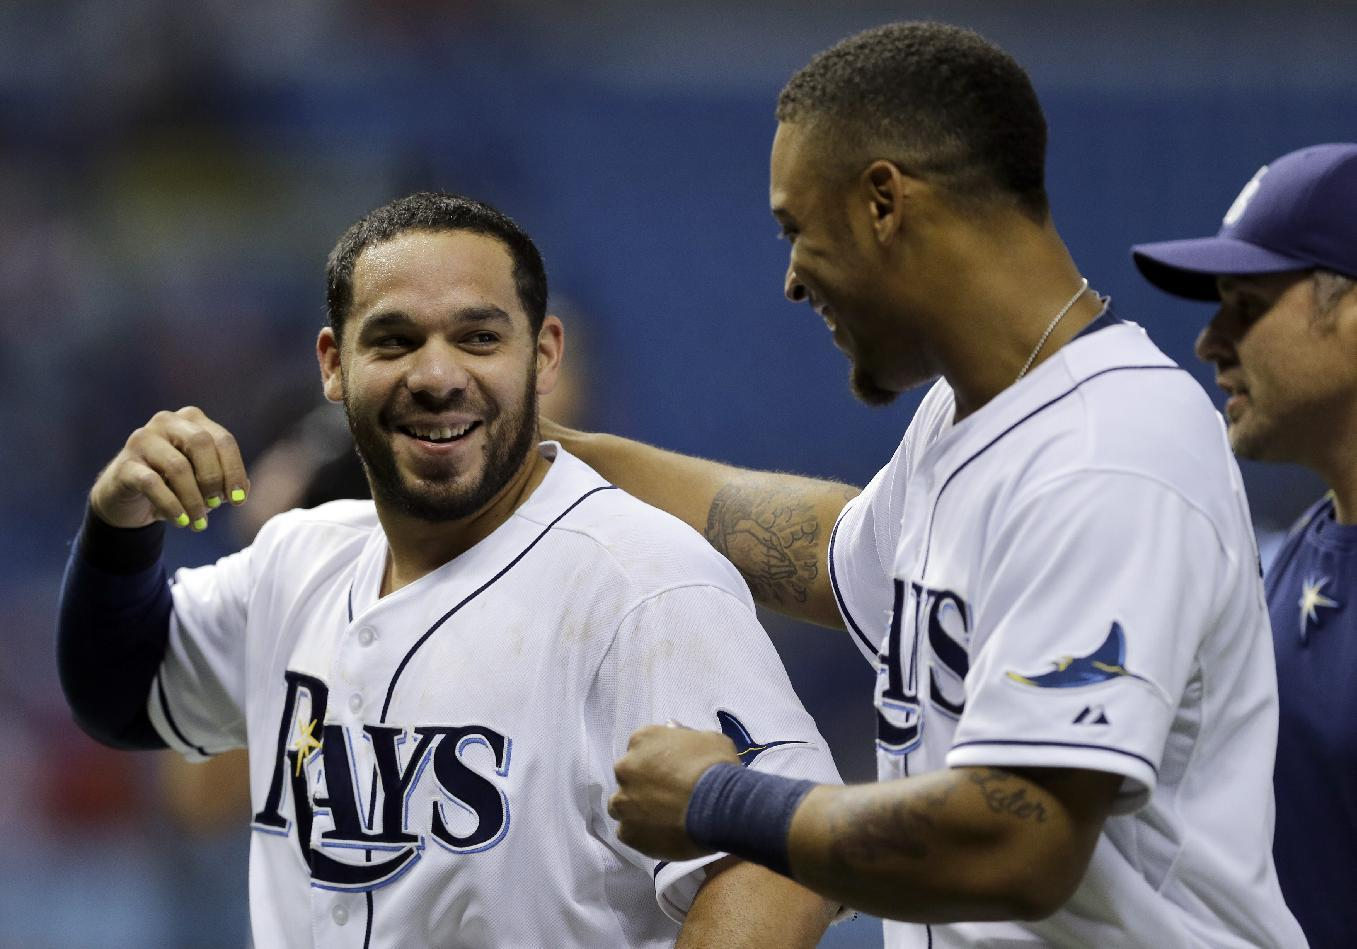 Ray of light: Rene Rivera lifts Tampa Bay in the bottom of the ninth